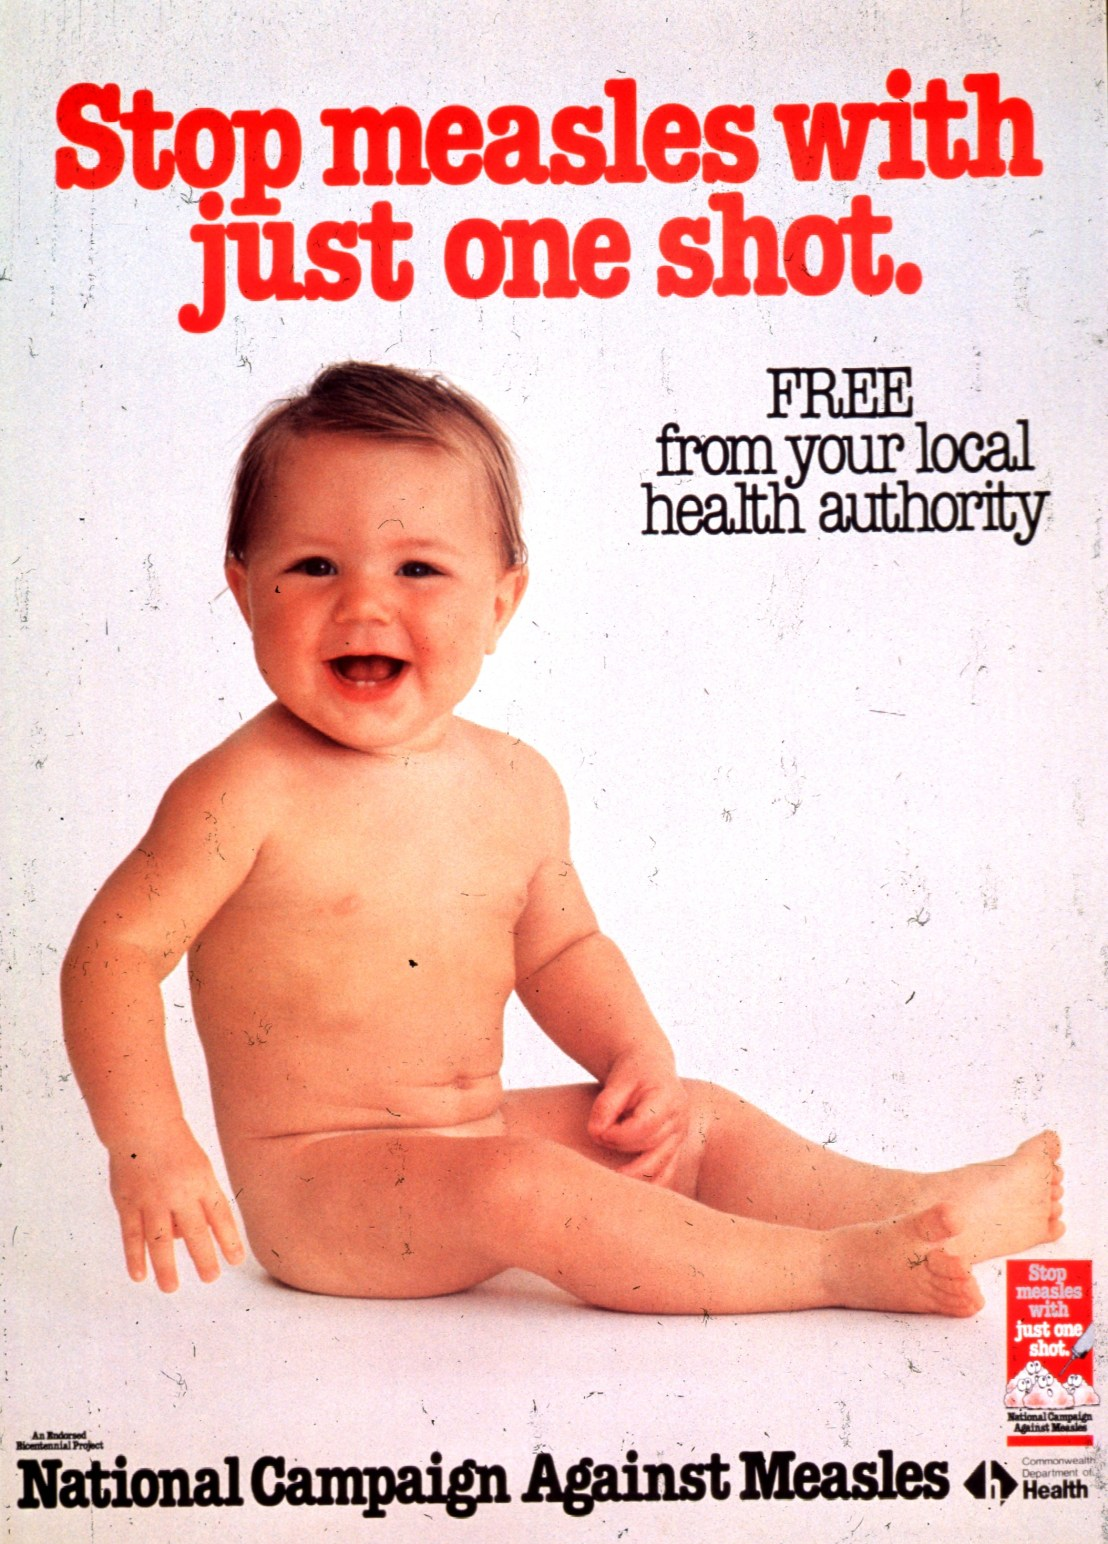 Stop measles with just one shot, well two...